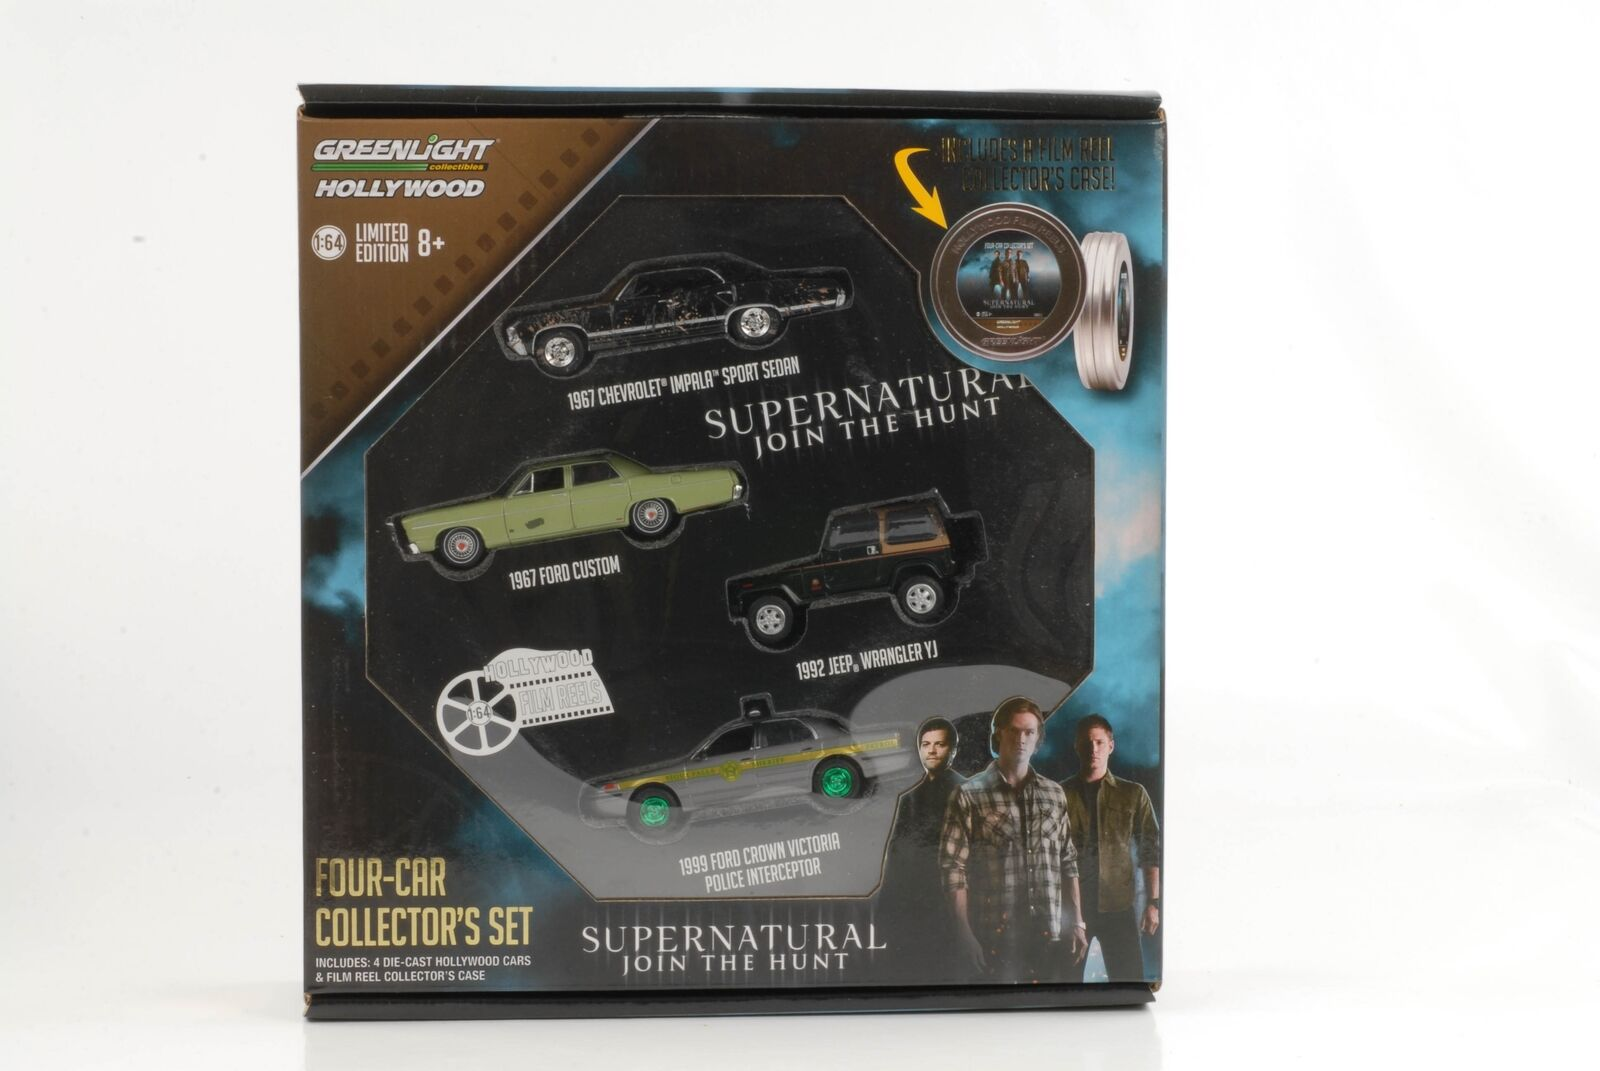 Movie Super Natural Join The Hunt Poison Bobine Set 4 car Incl .1 vert 1 64 Gree